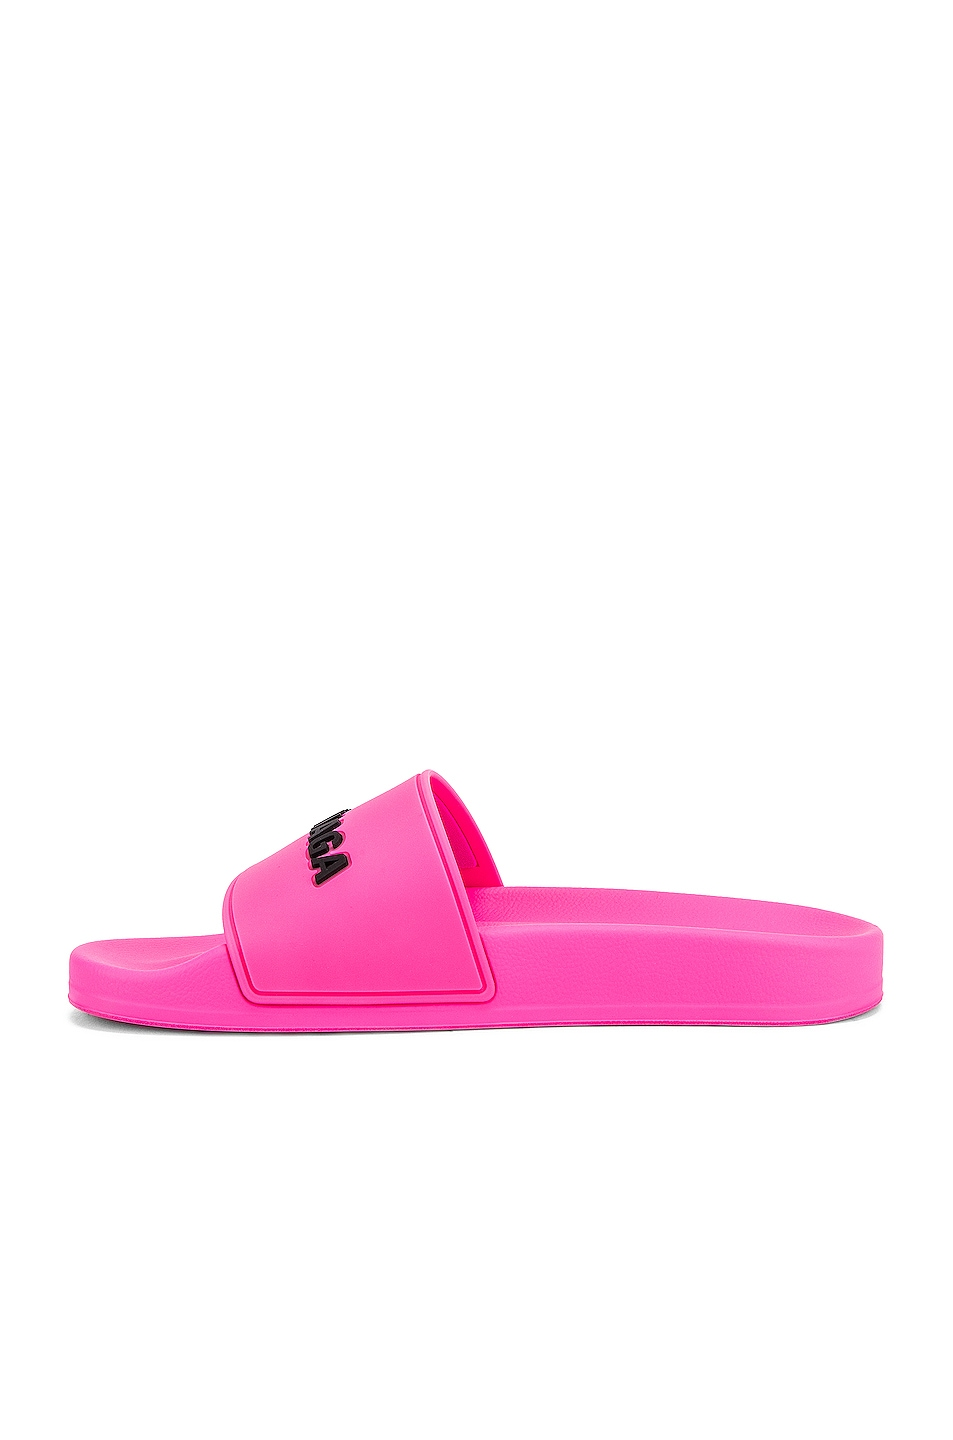 Image 5 of Balenciaga Rubber Logo Pool Slides in Neon Pink & Black